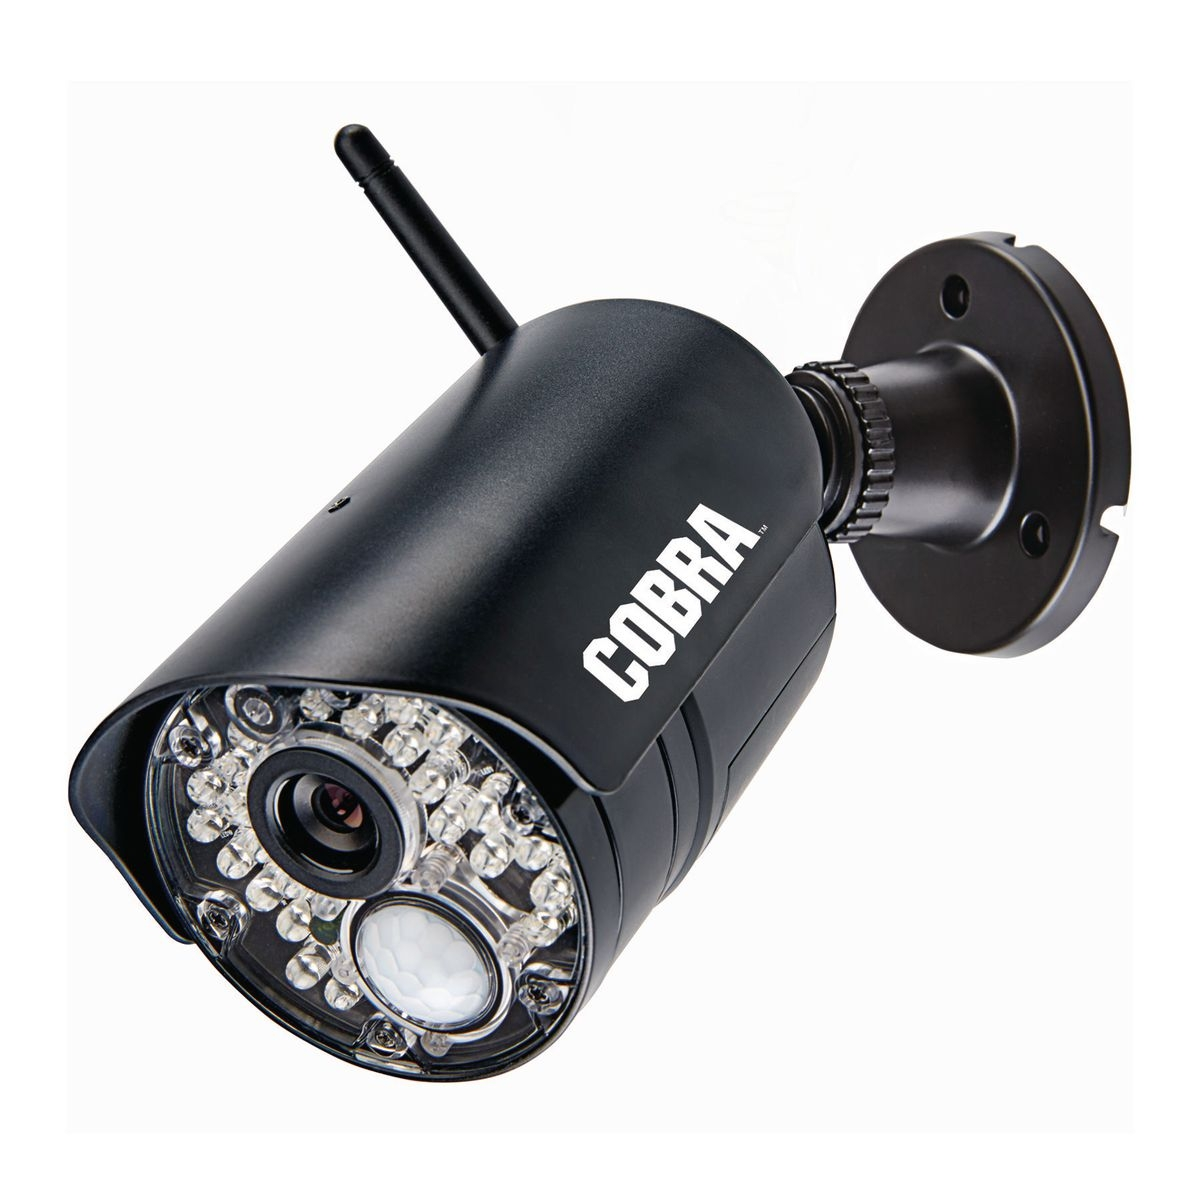 4 Channel Wireless Surveillance System With 2 Cameras Home 2channel Remote View Mobile Dvr Shock Sensor And Wifi